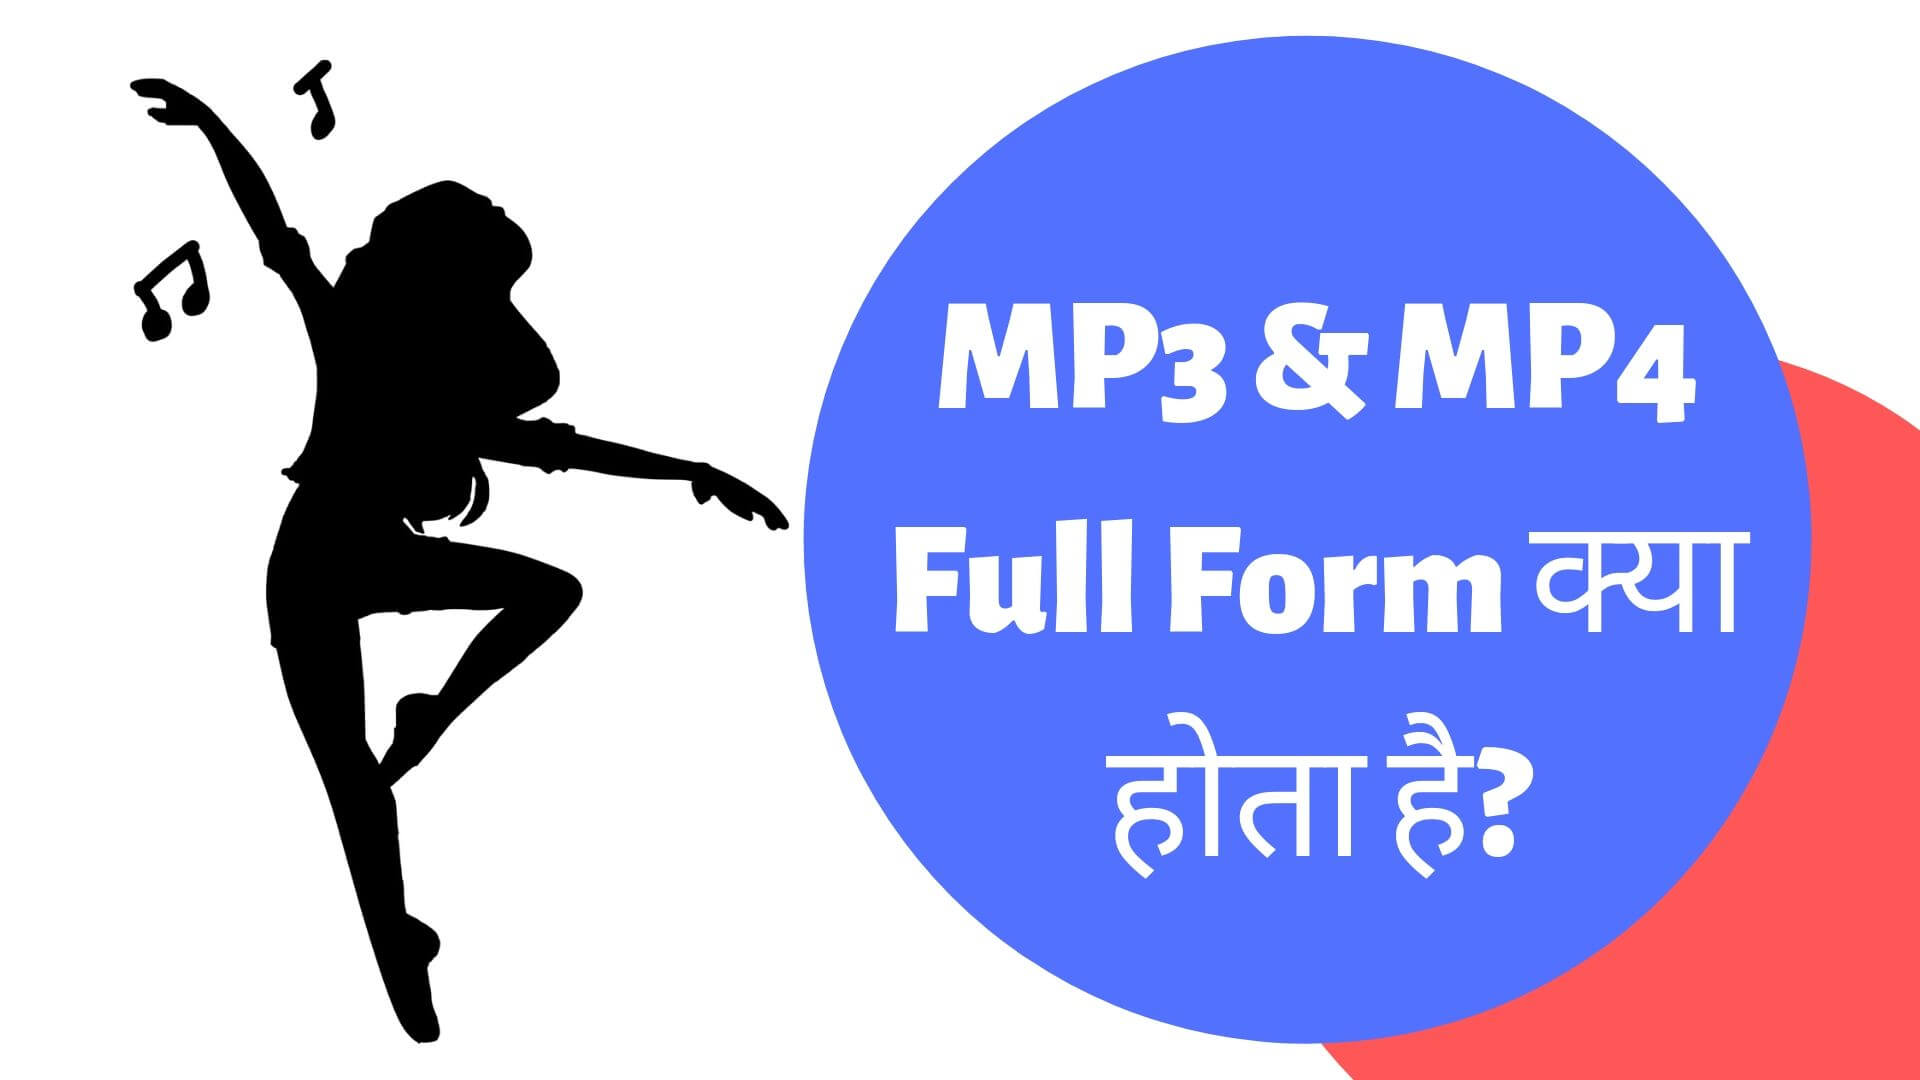 MP3 & MP4 Full Form